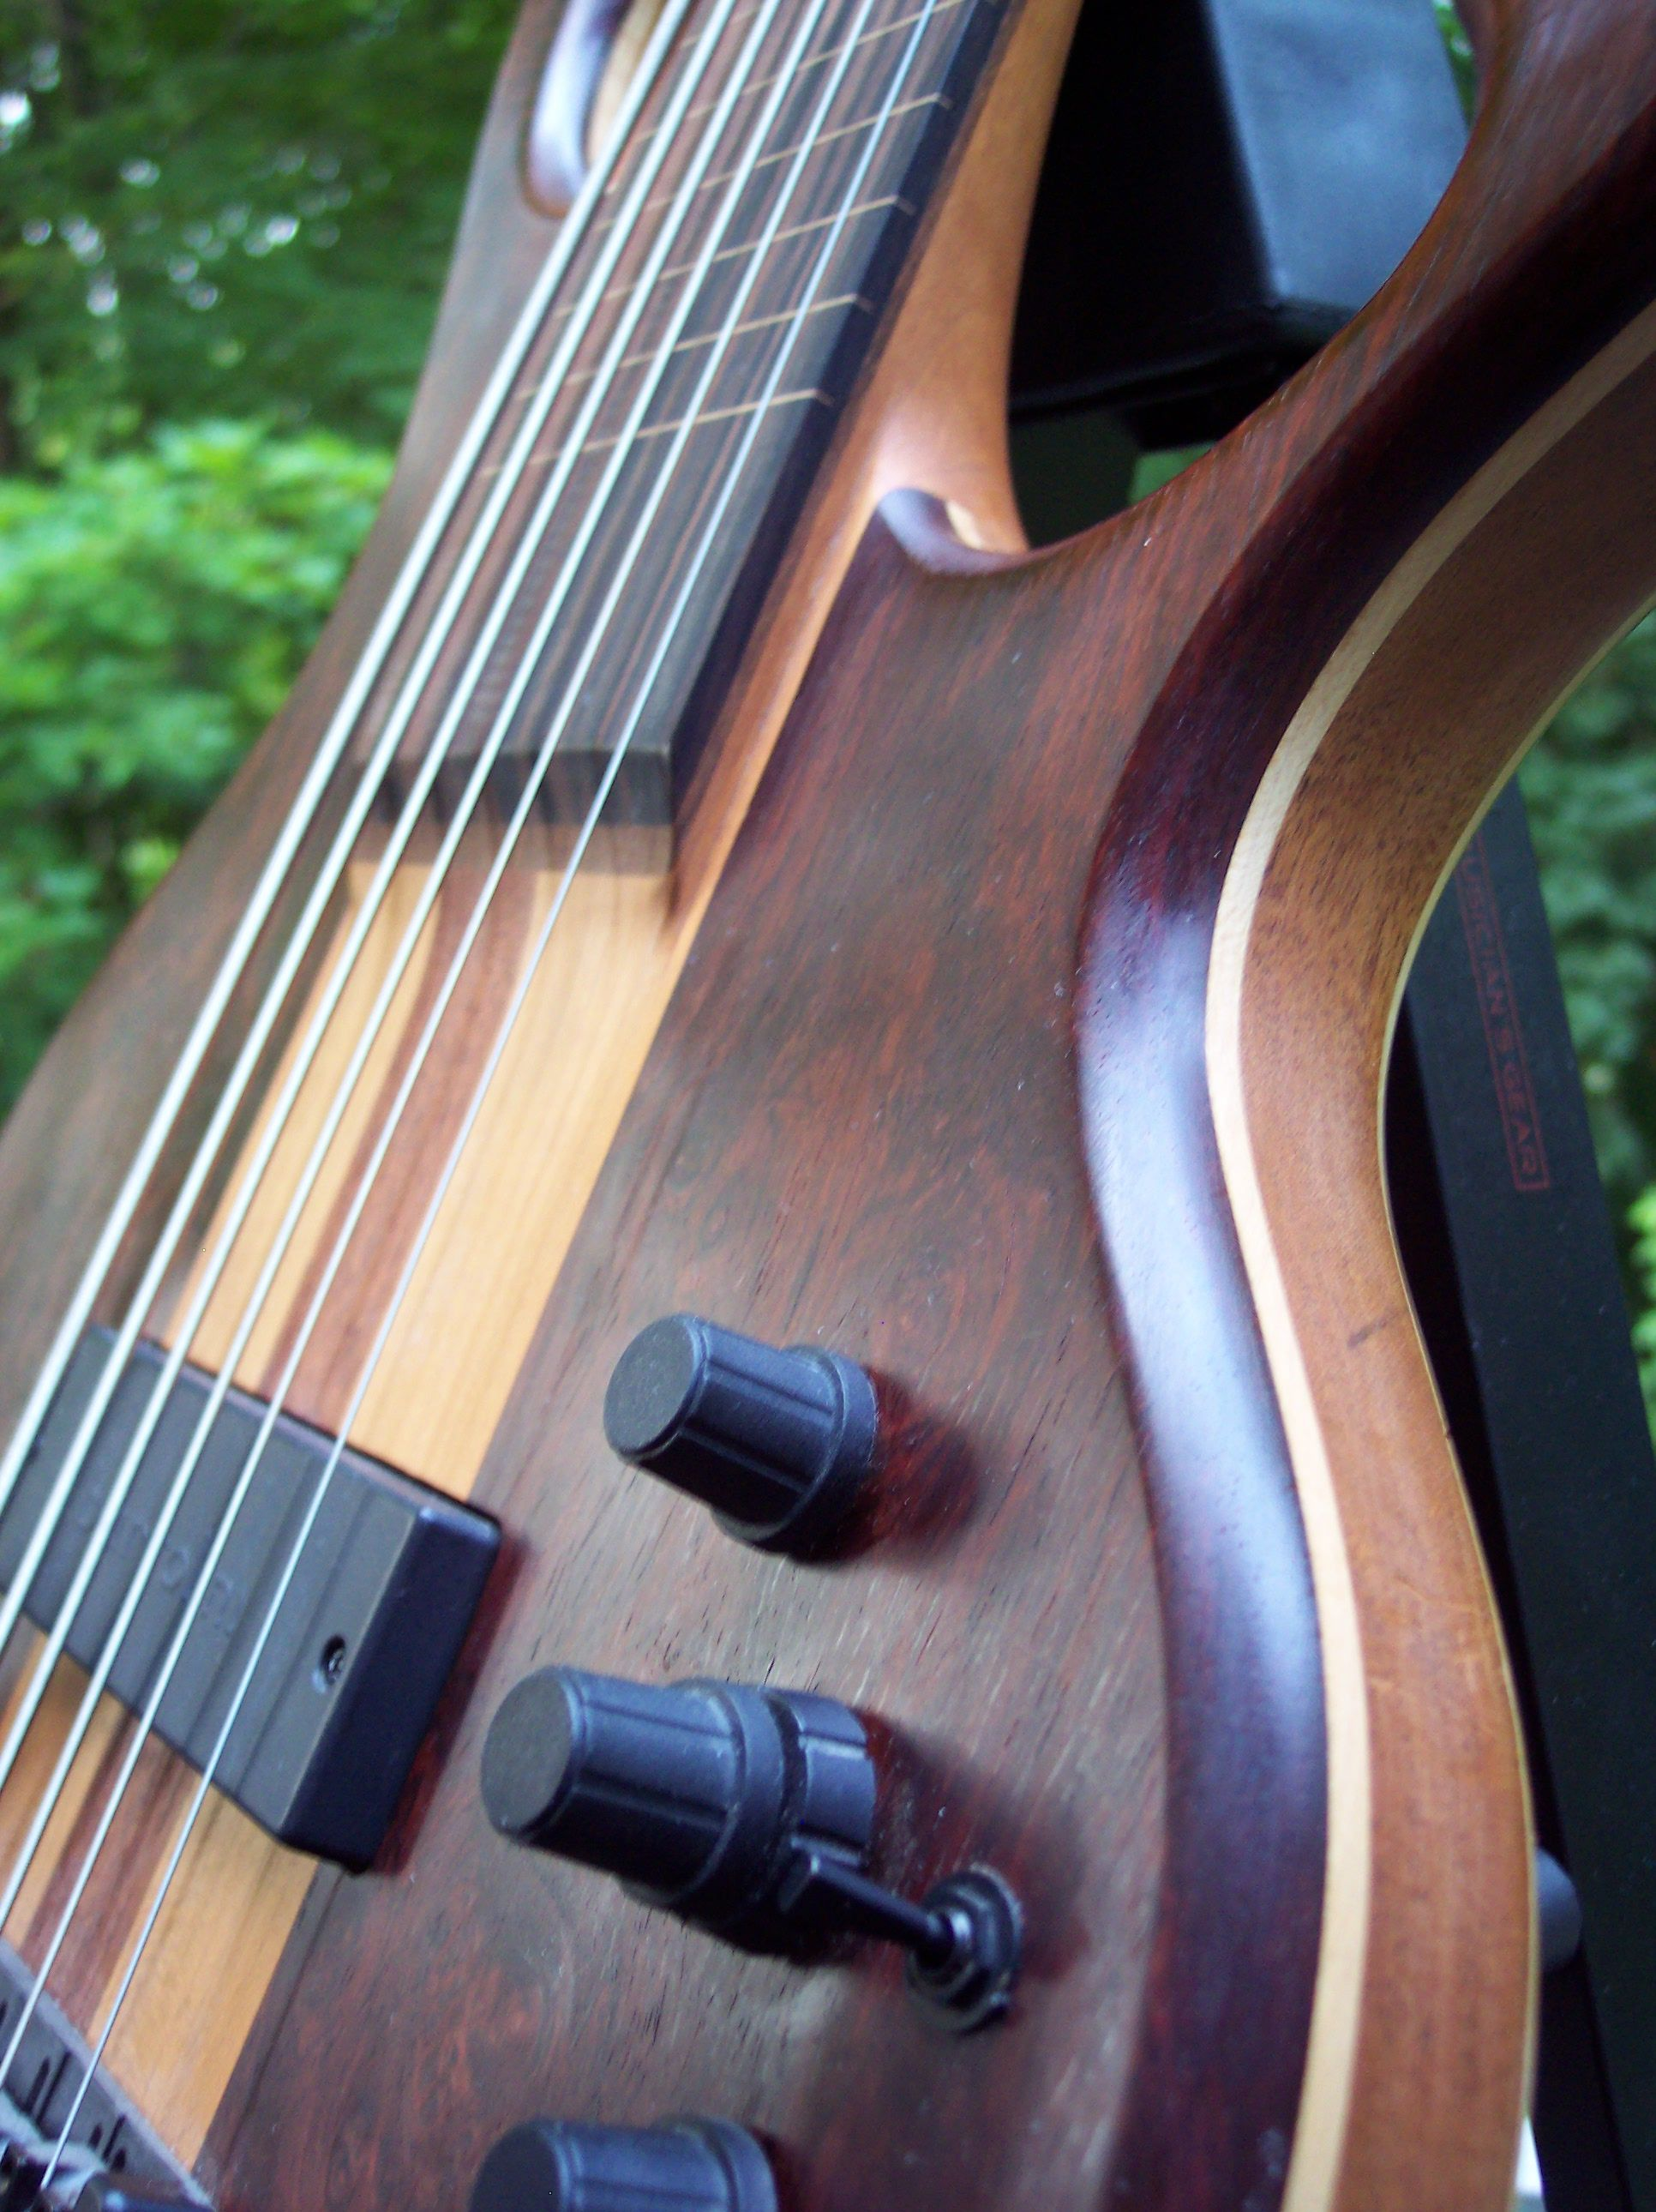 FBB six-string fretless bass